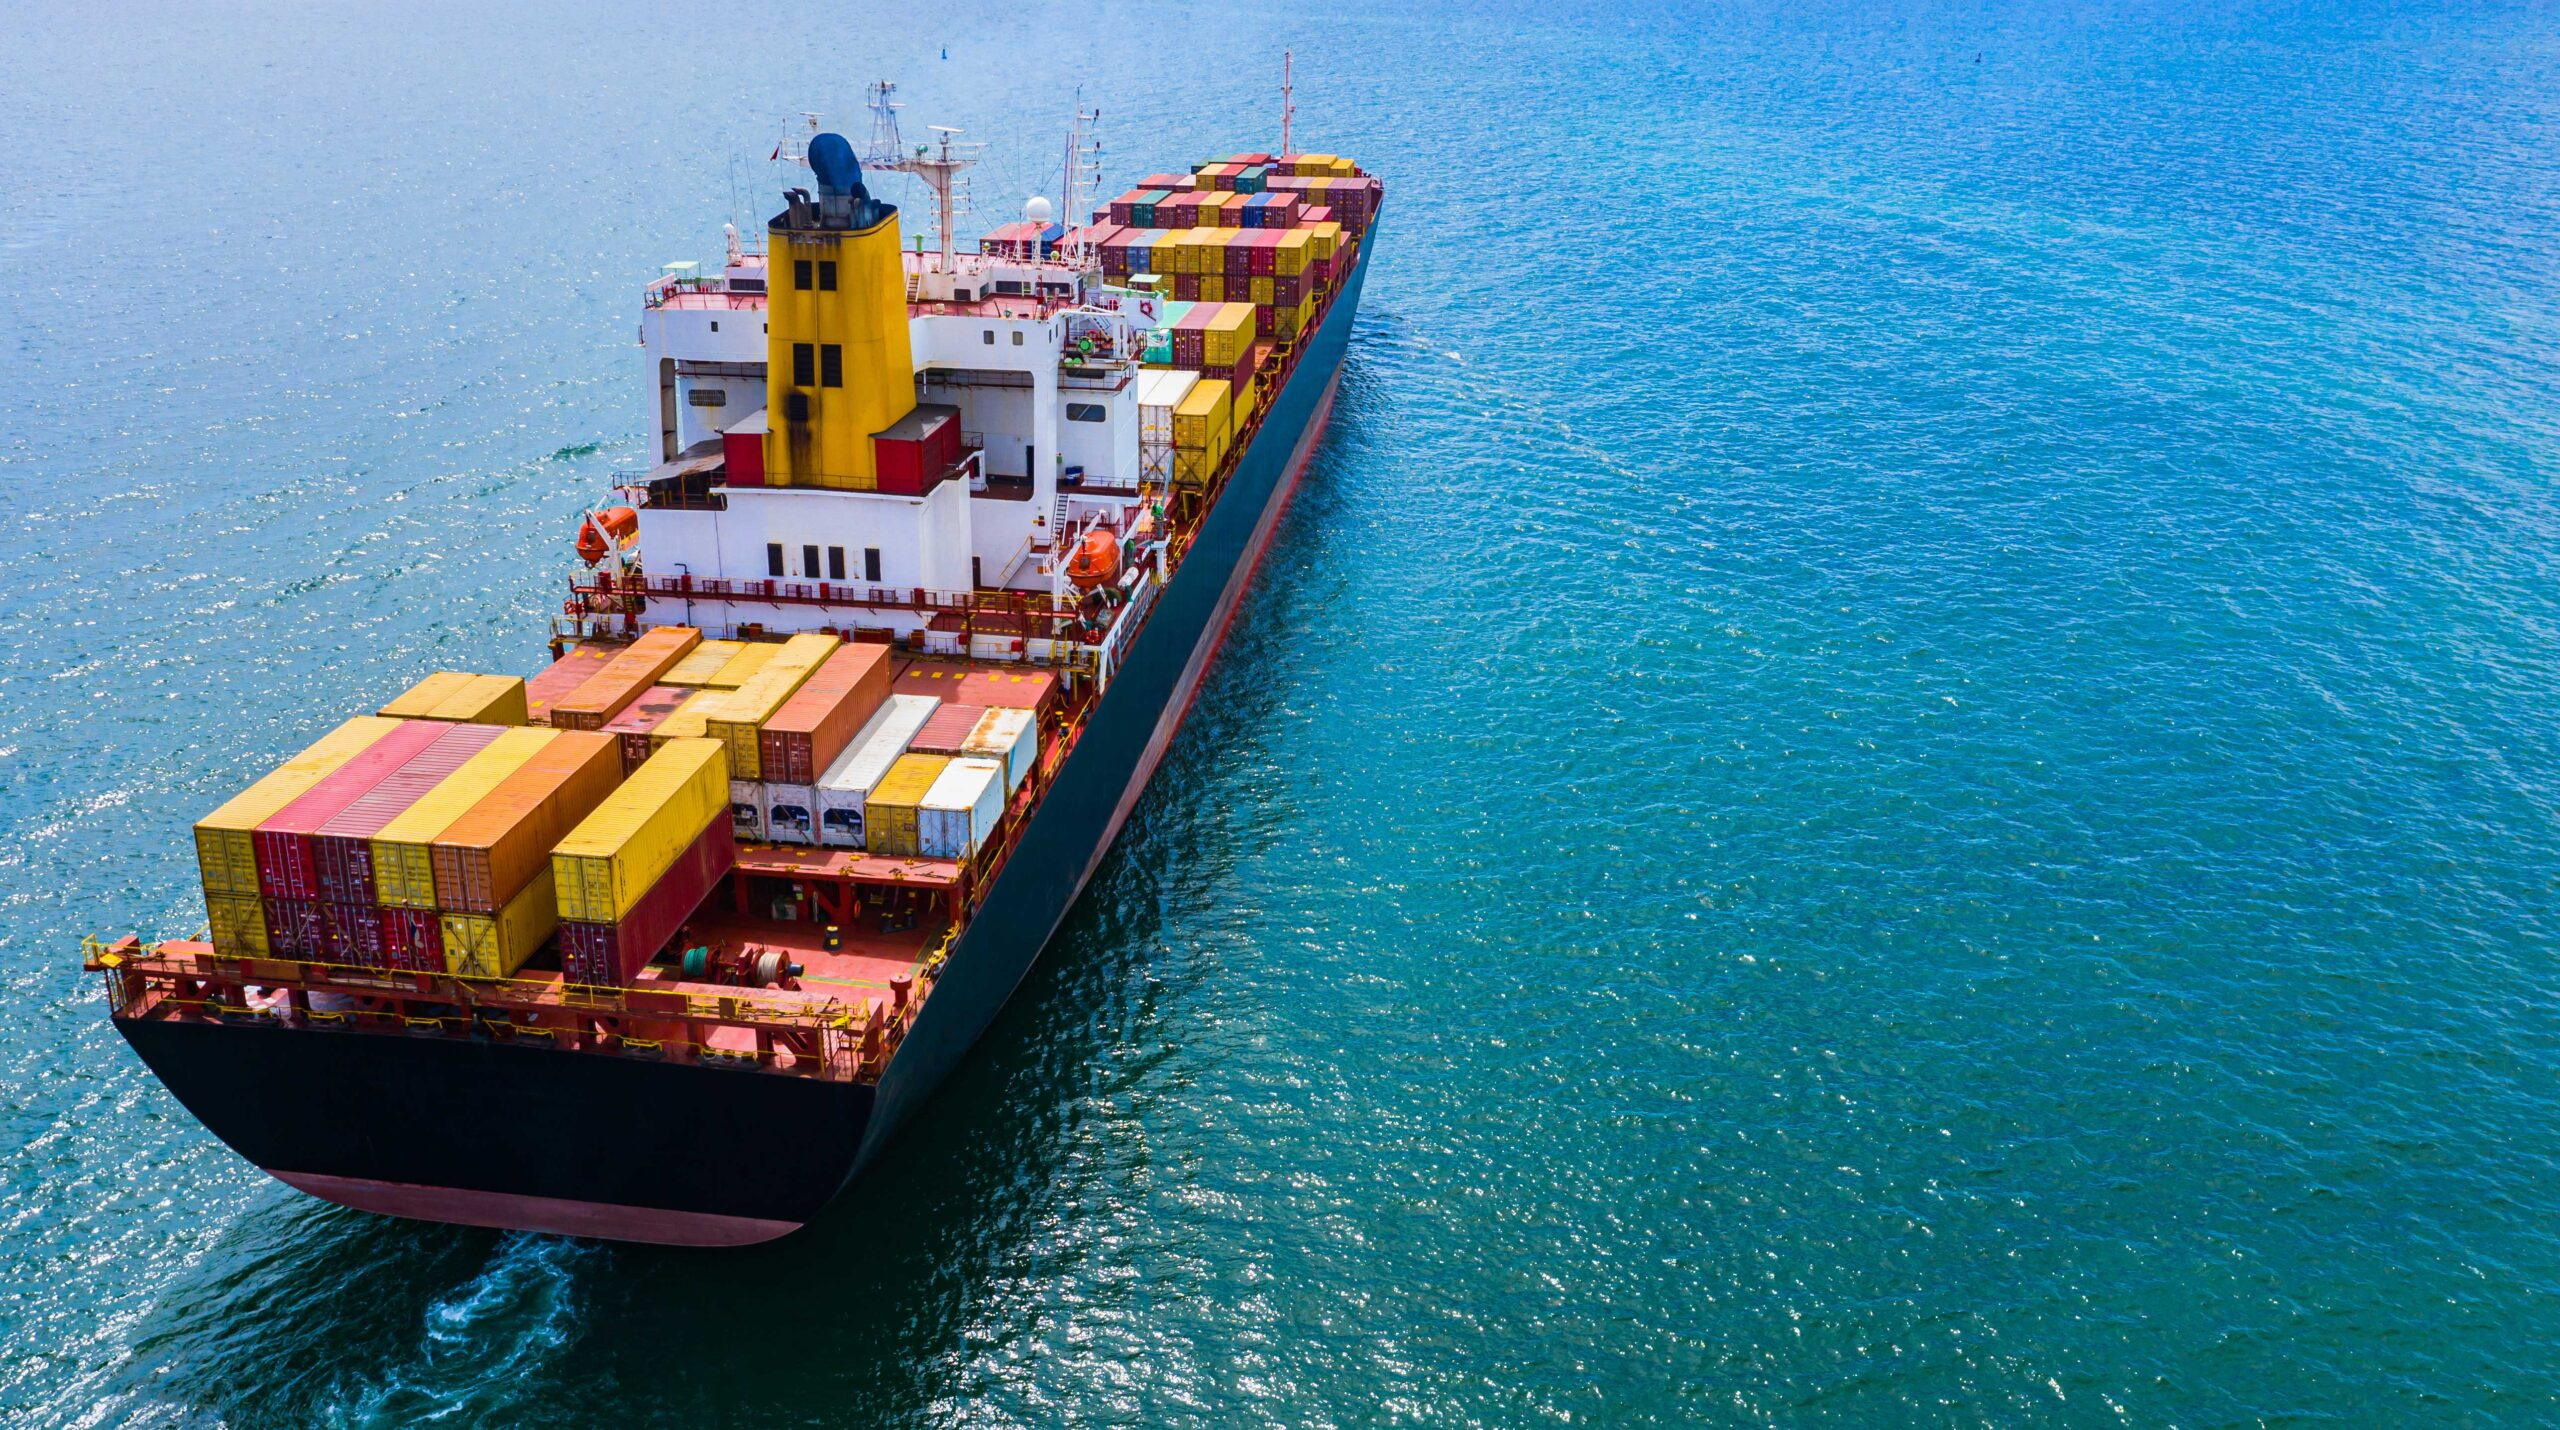 """Cyberhelix announces the development of SOCaaS maritime solution under the name """"Cyber Propeller"""""""